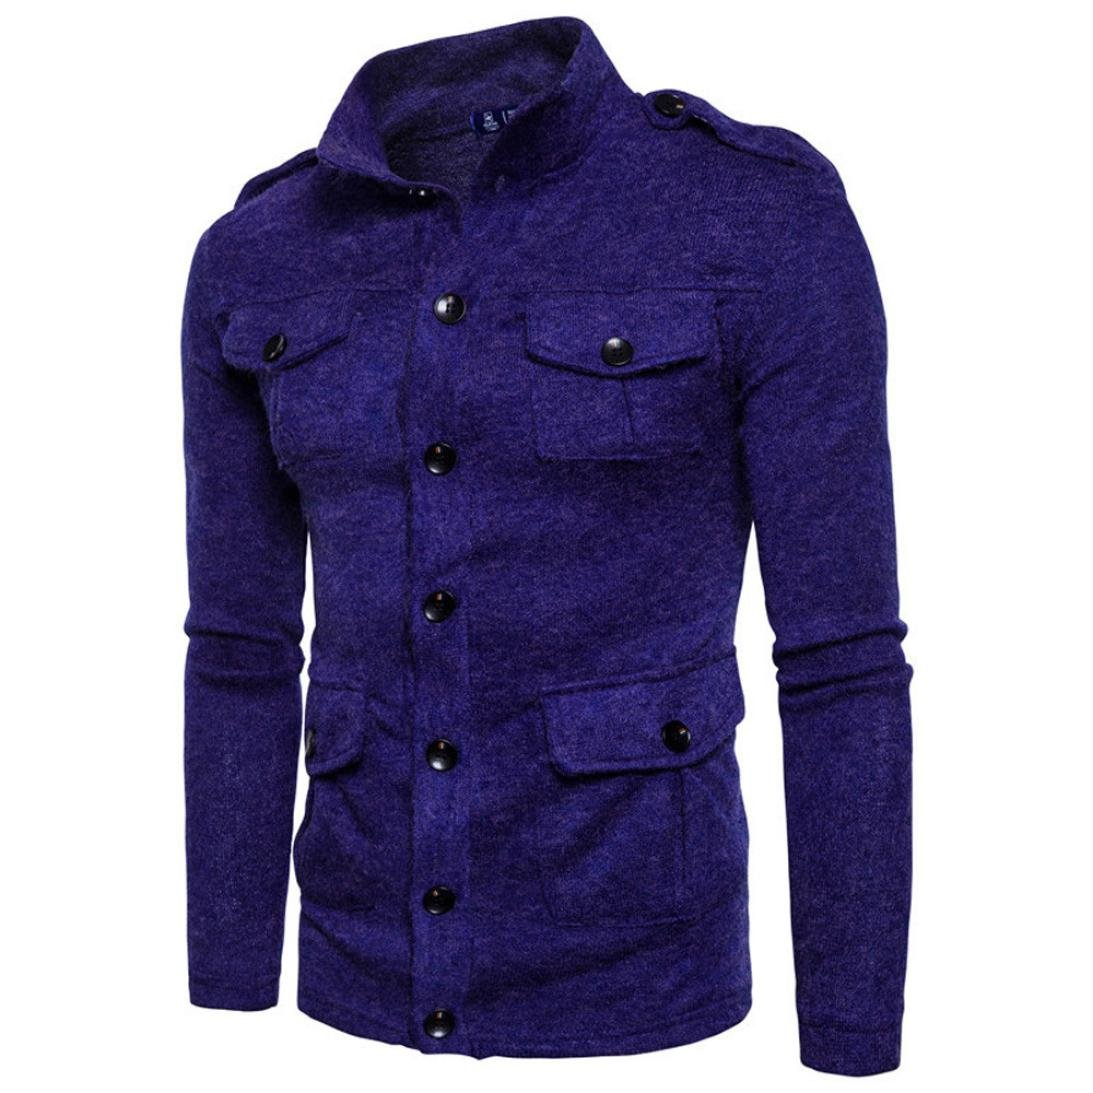 GREFER Clearance New Men's Fashion Slim Designed Top Cardigan Coat Jacket (XS, Blue) by GREFER